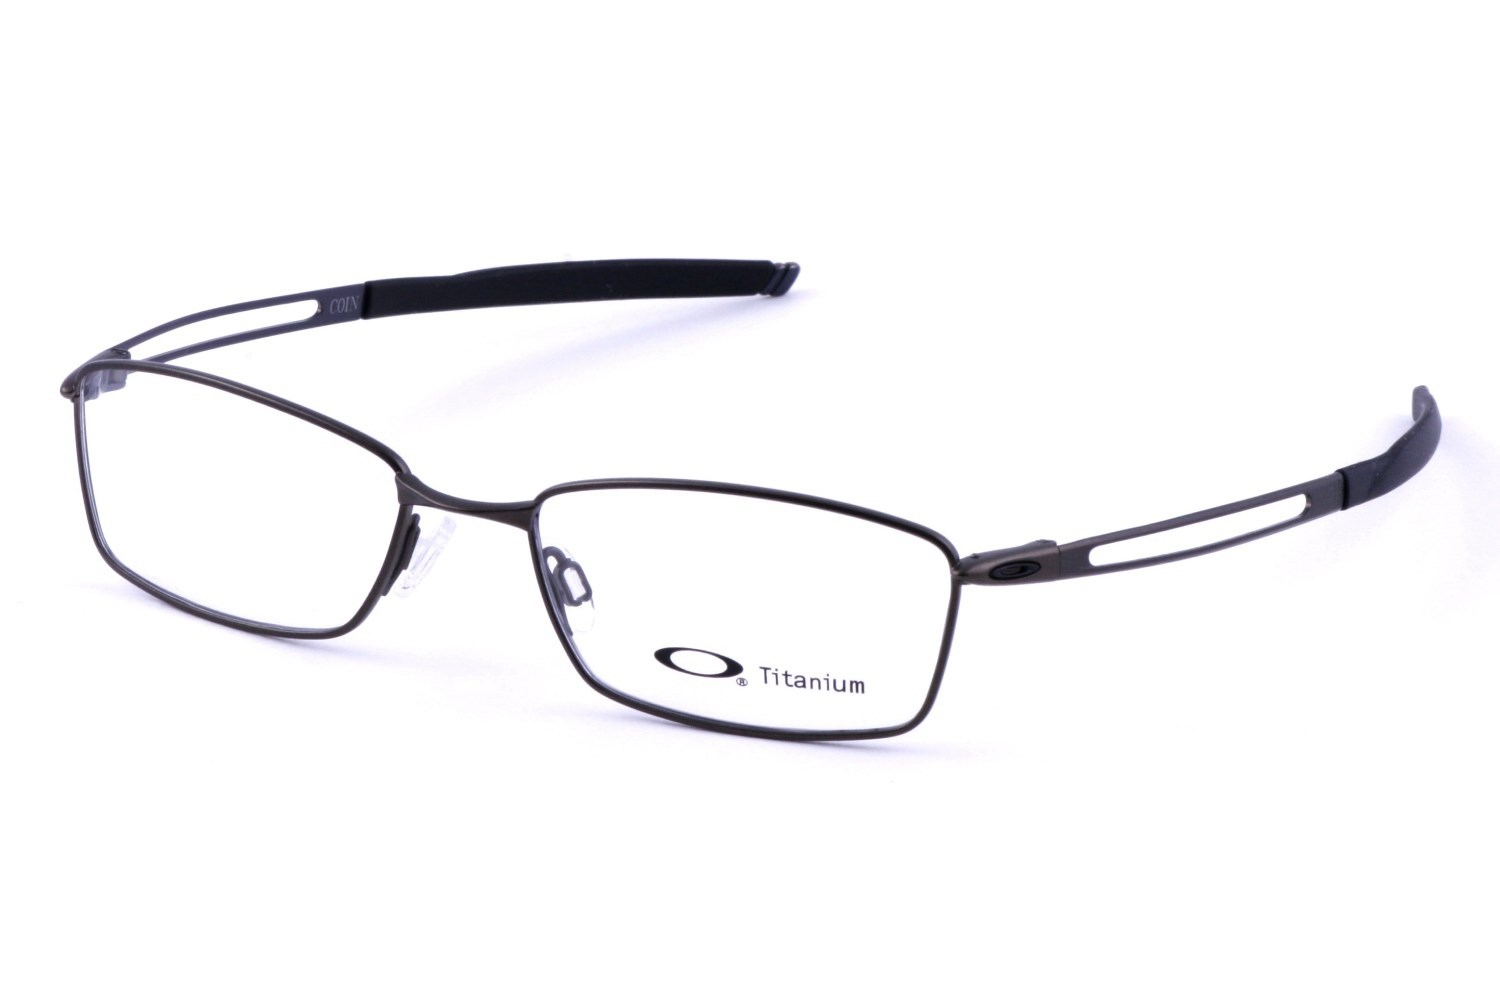 Oakley Coin (54) Prescription Eyeglasses - MariettaVisionVenus